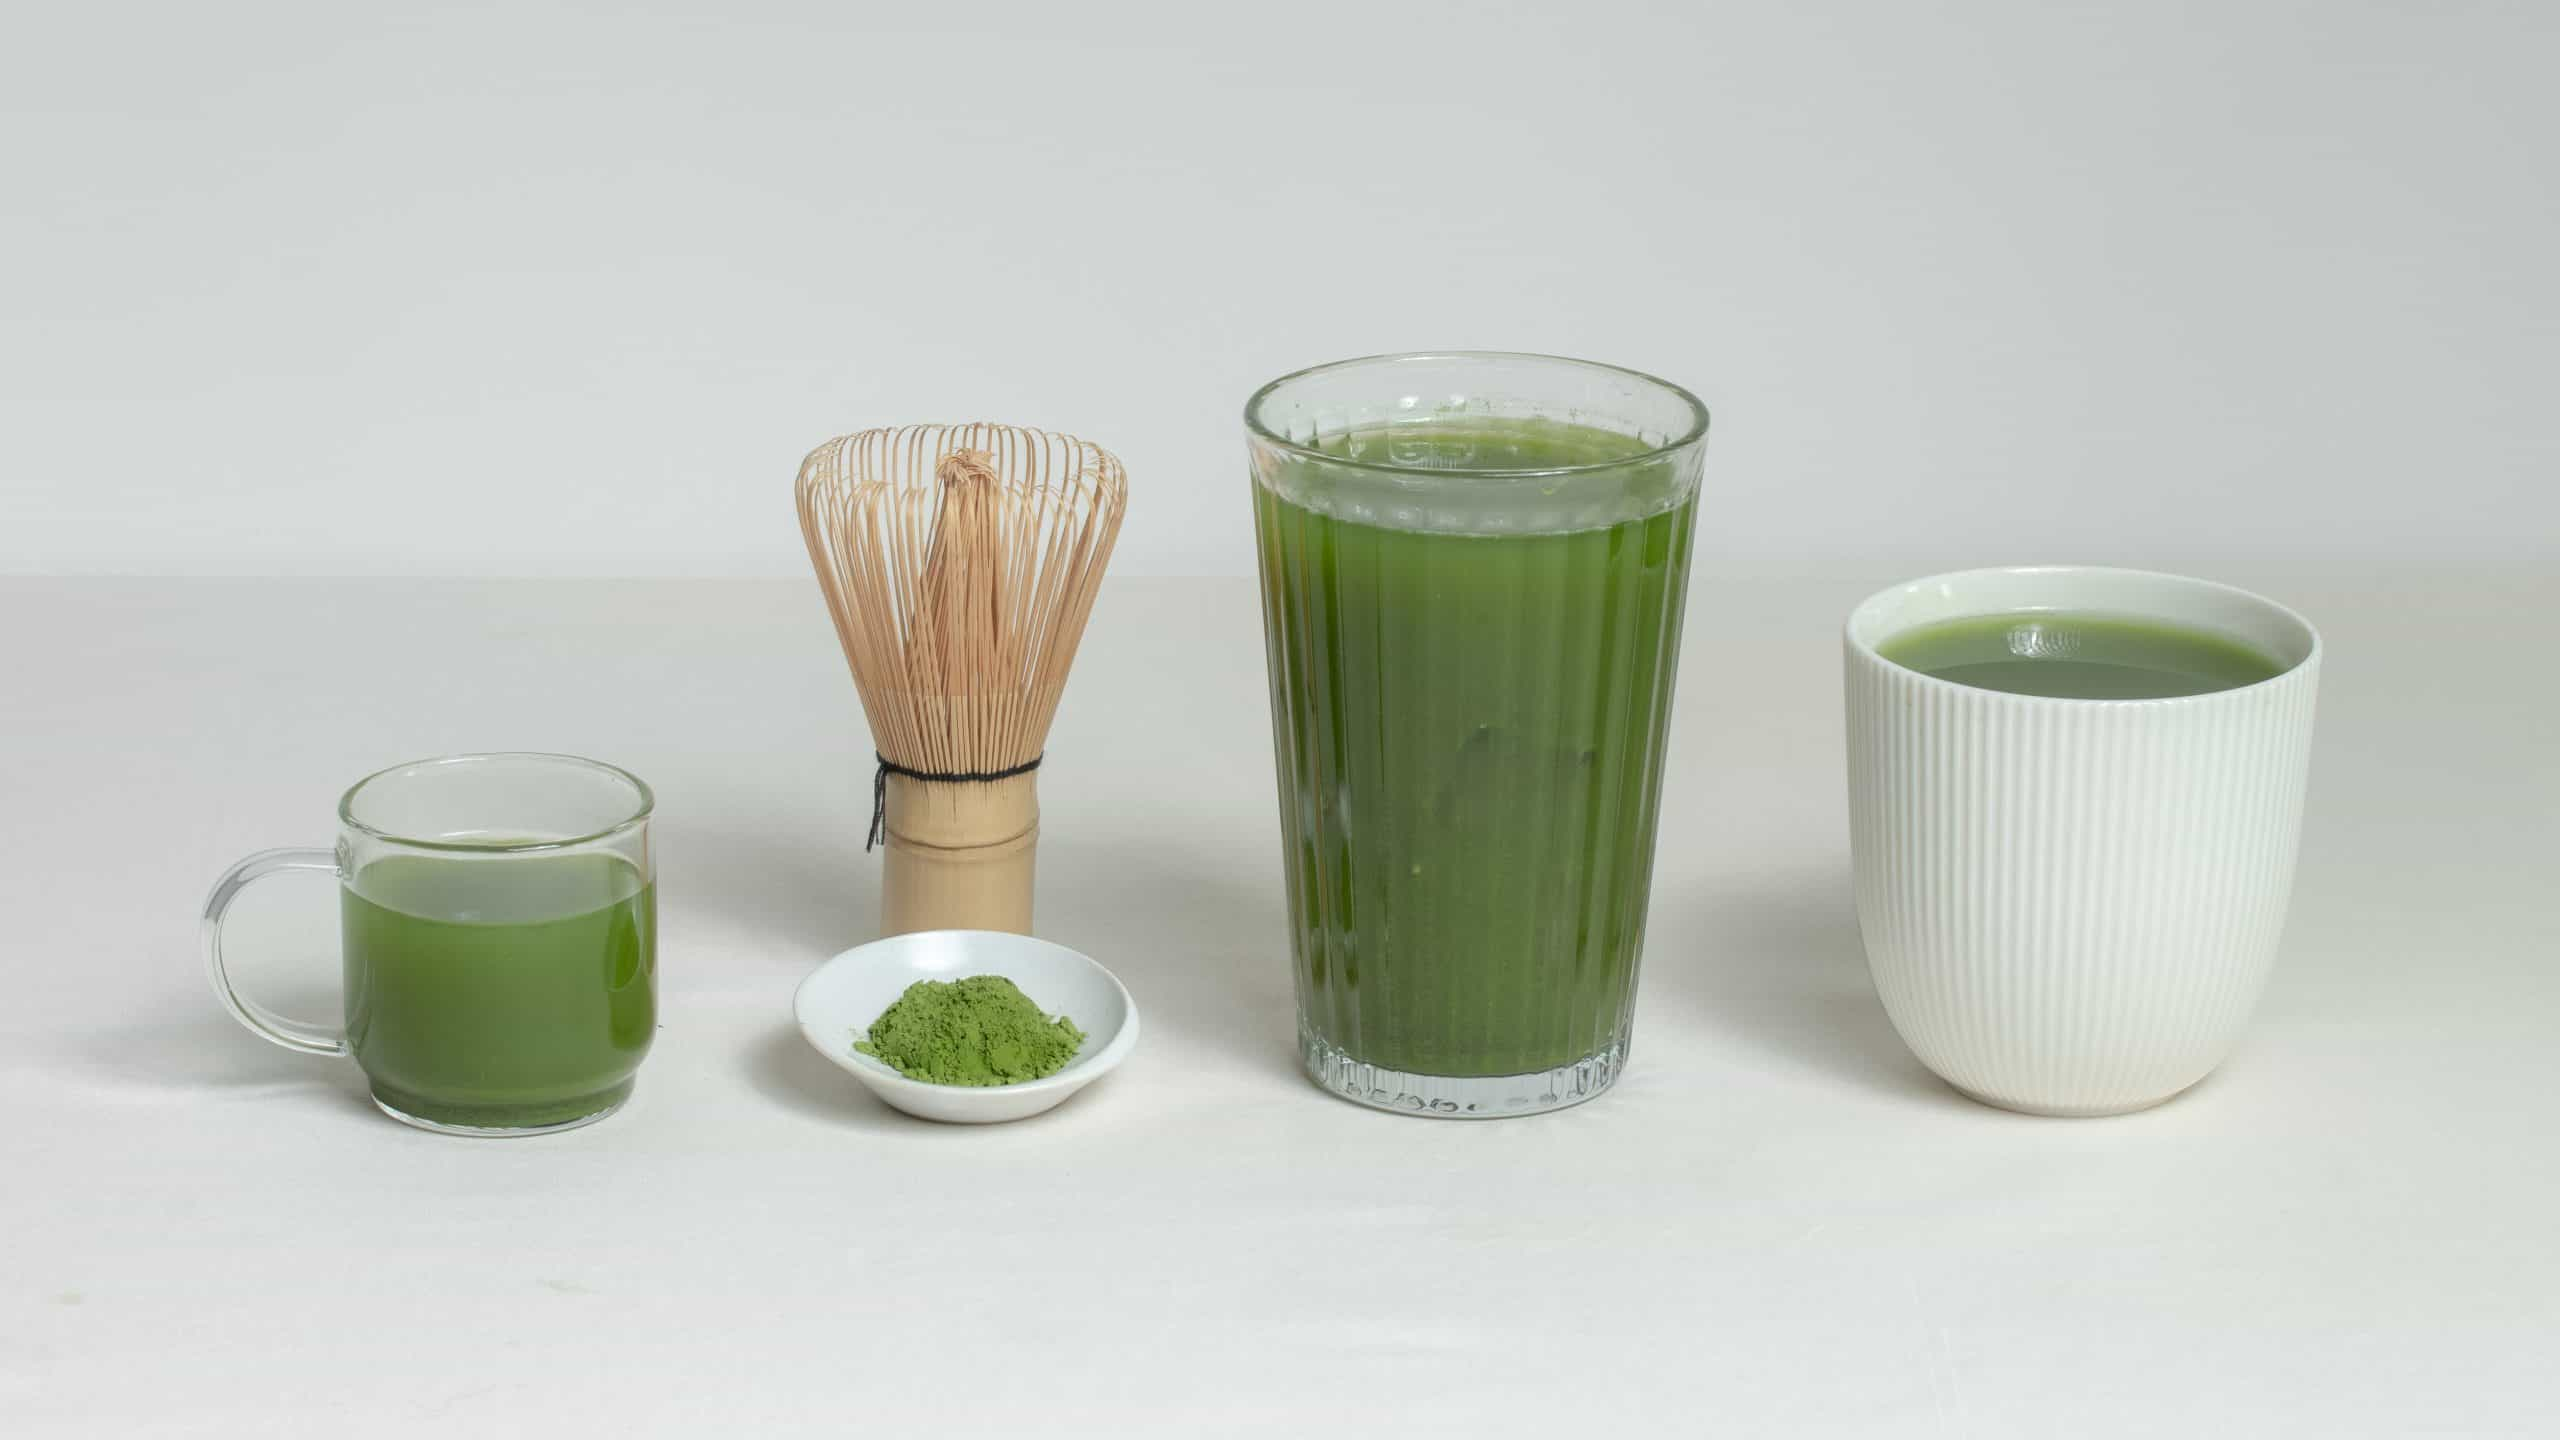 how to prepare matcha properly